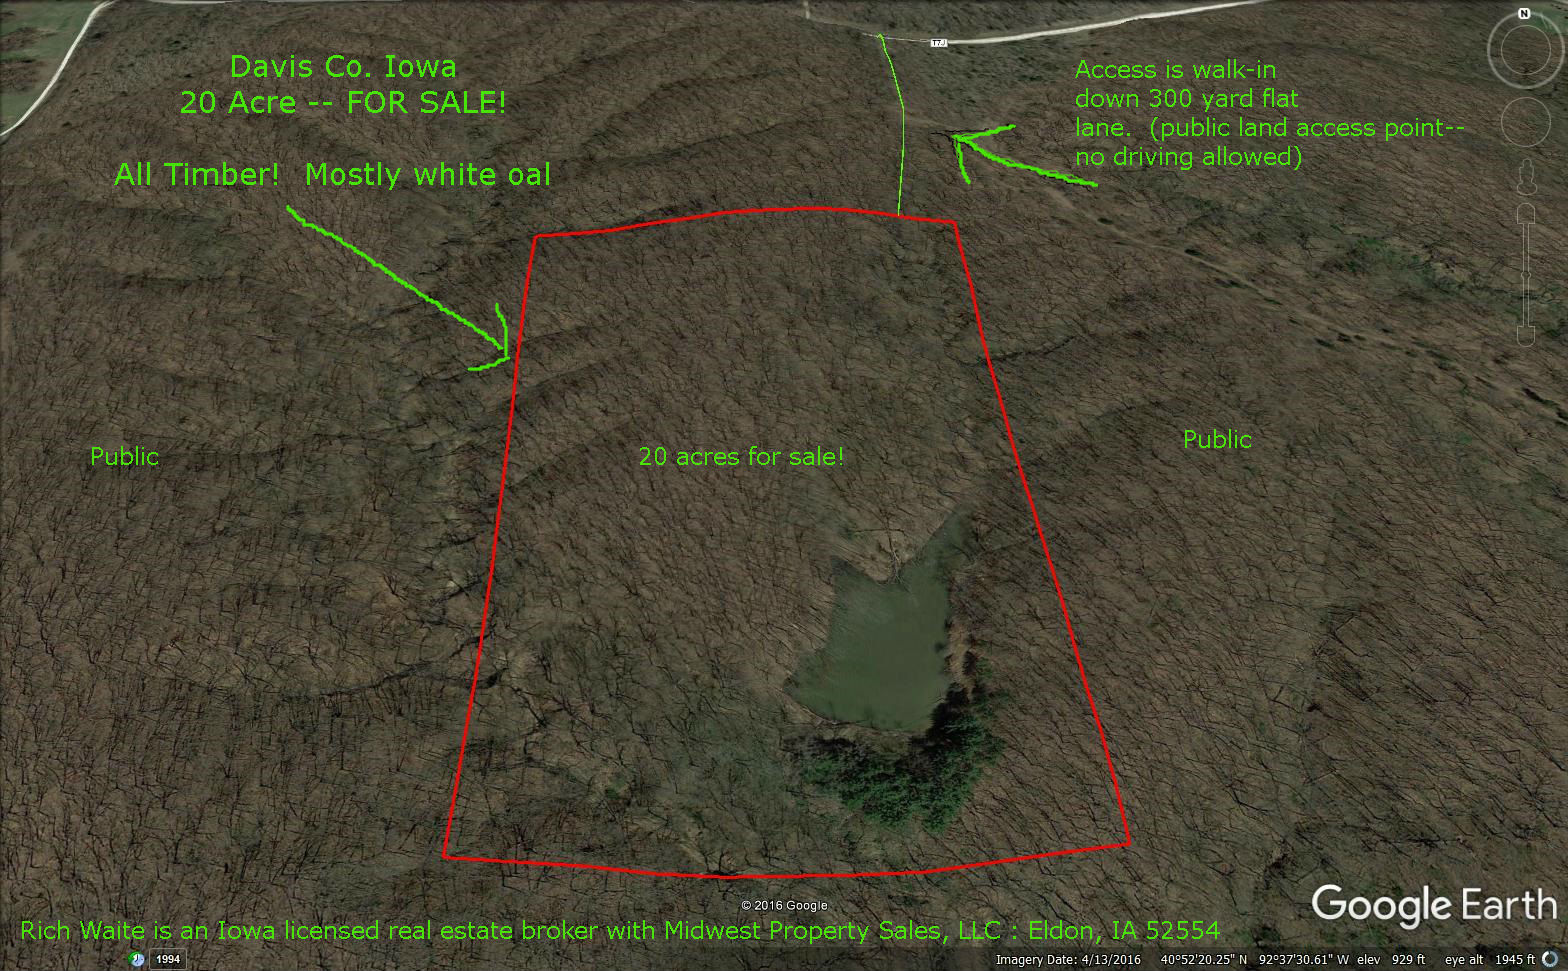 Davis county Iowa 20 acre timber ground for sale